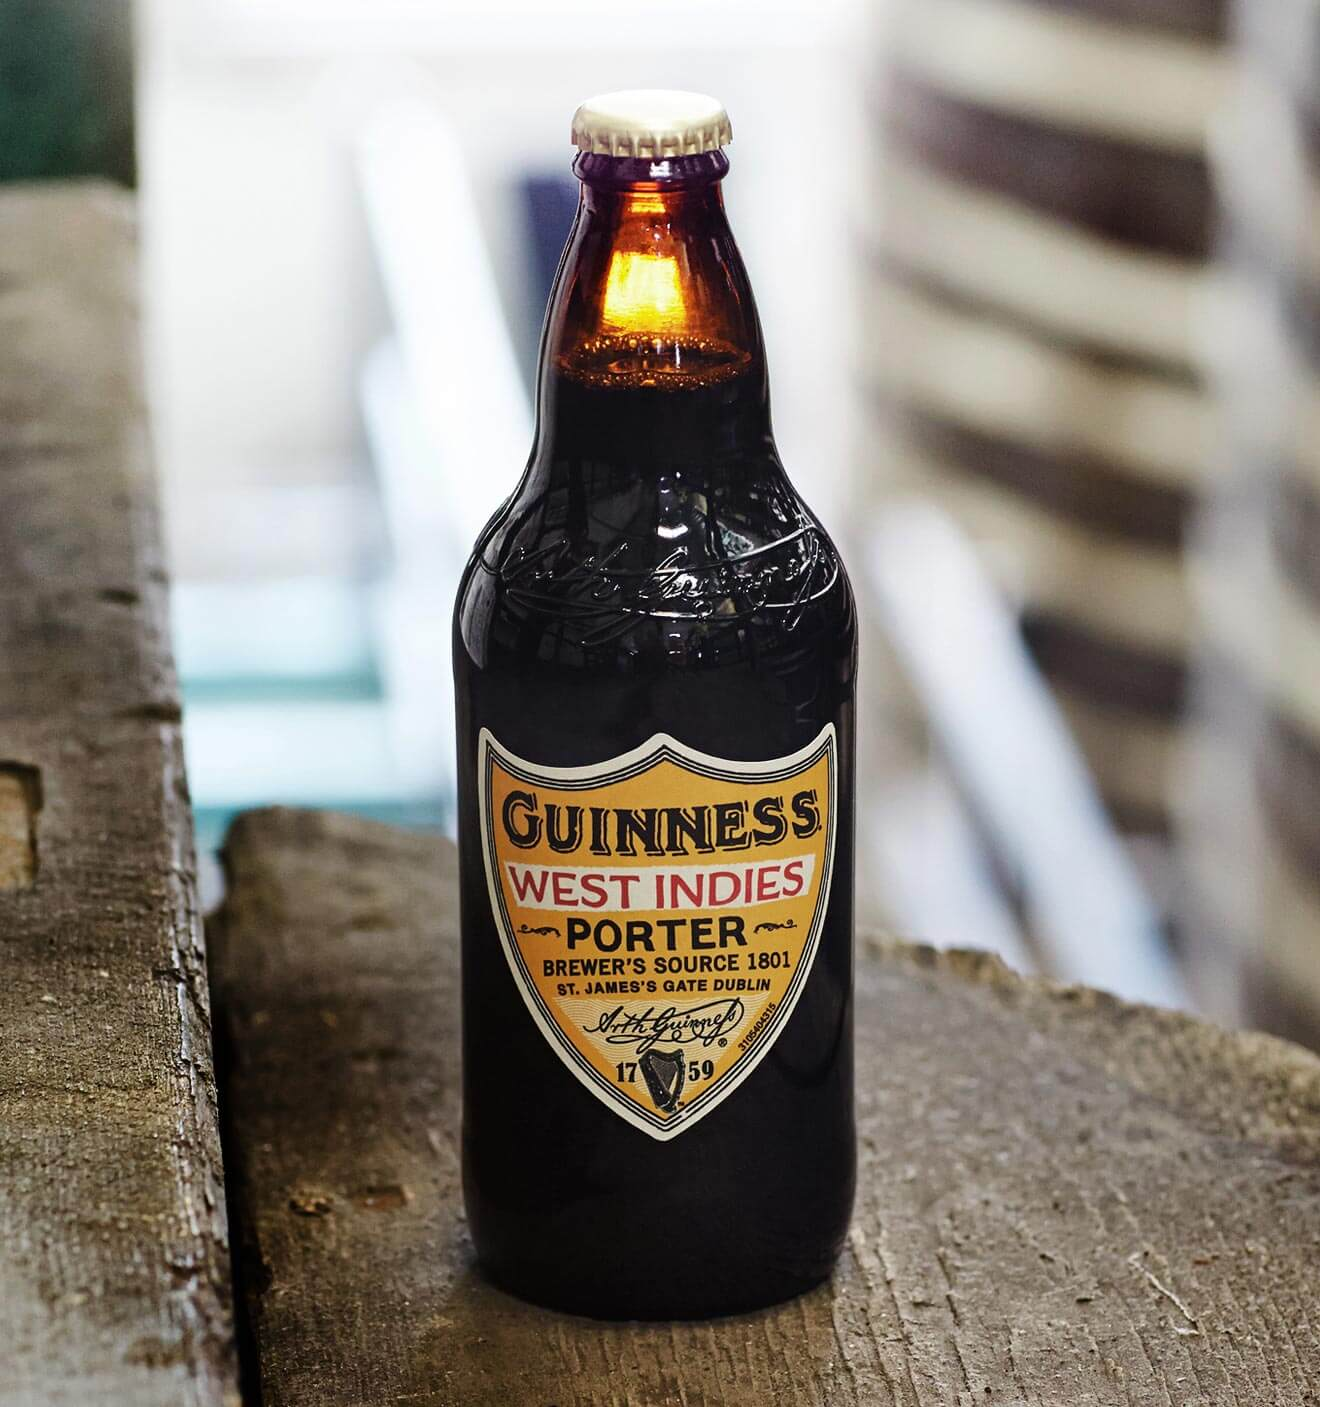 West Indies Porter, from Guinness, beer news